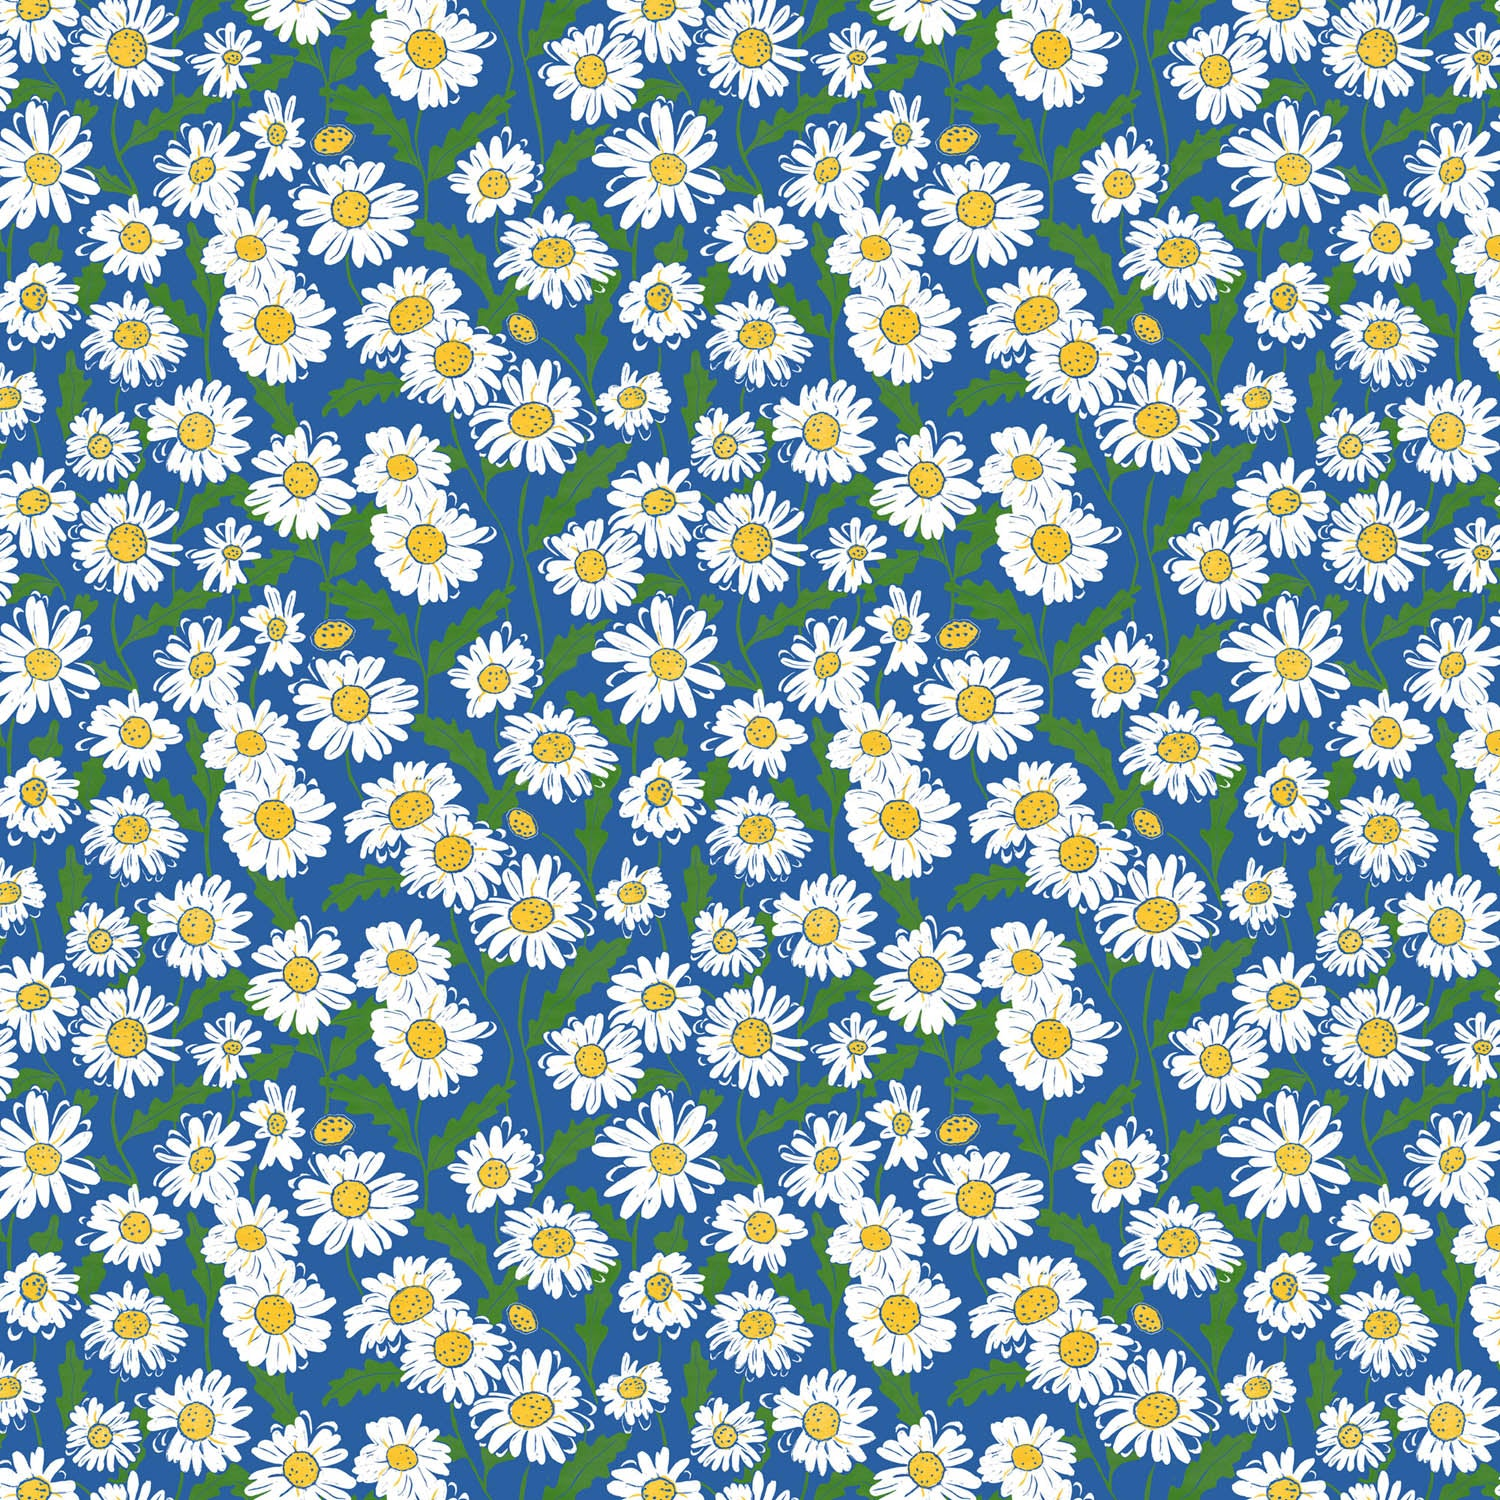 Daisy Pattern by Three Bears Prints